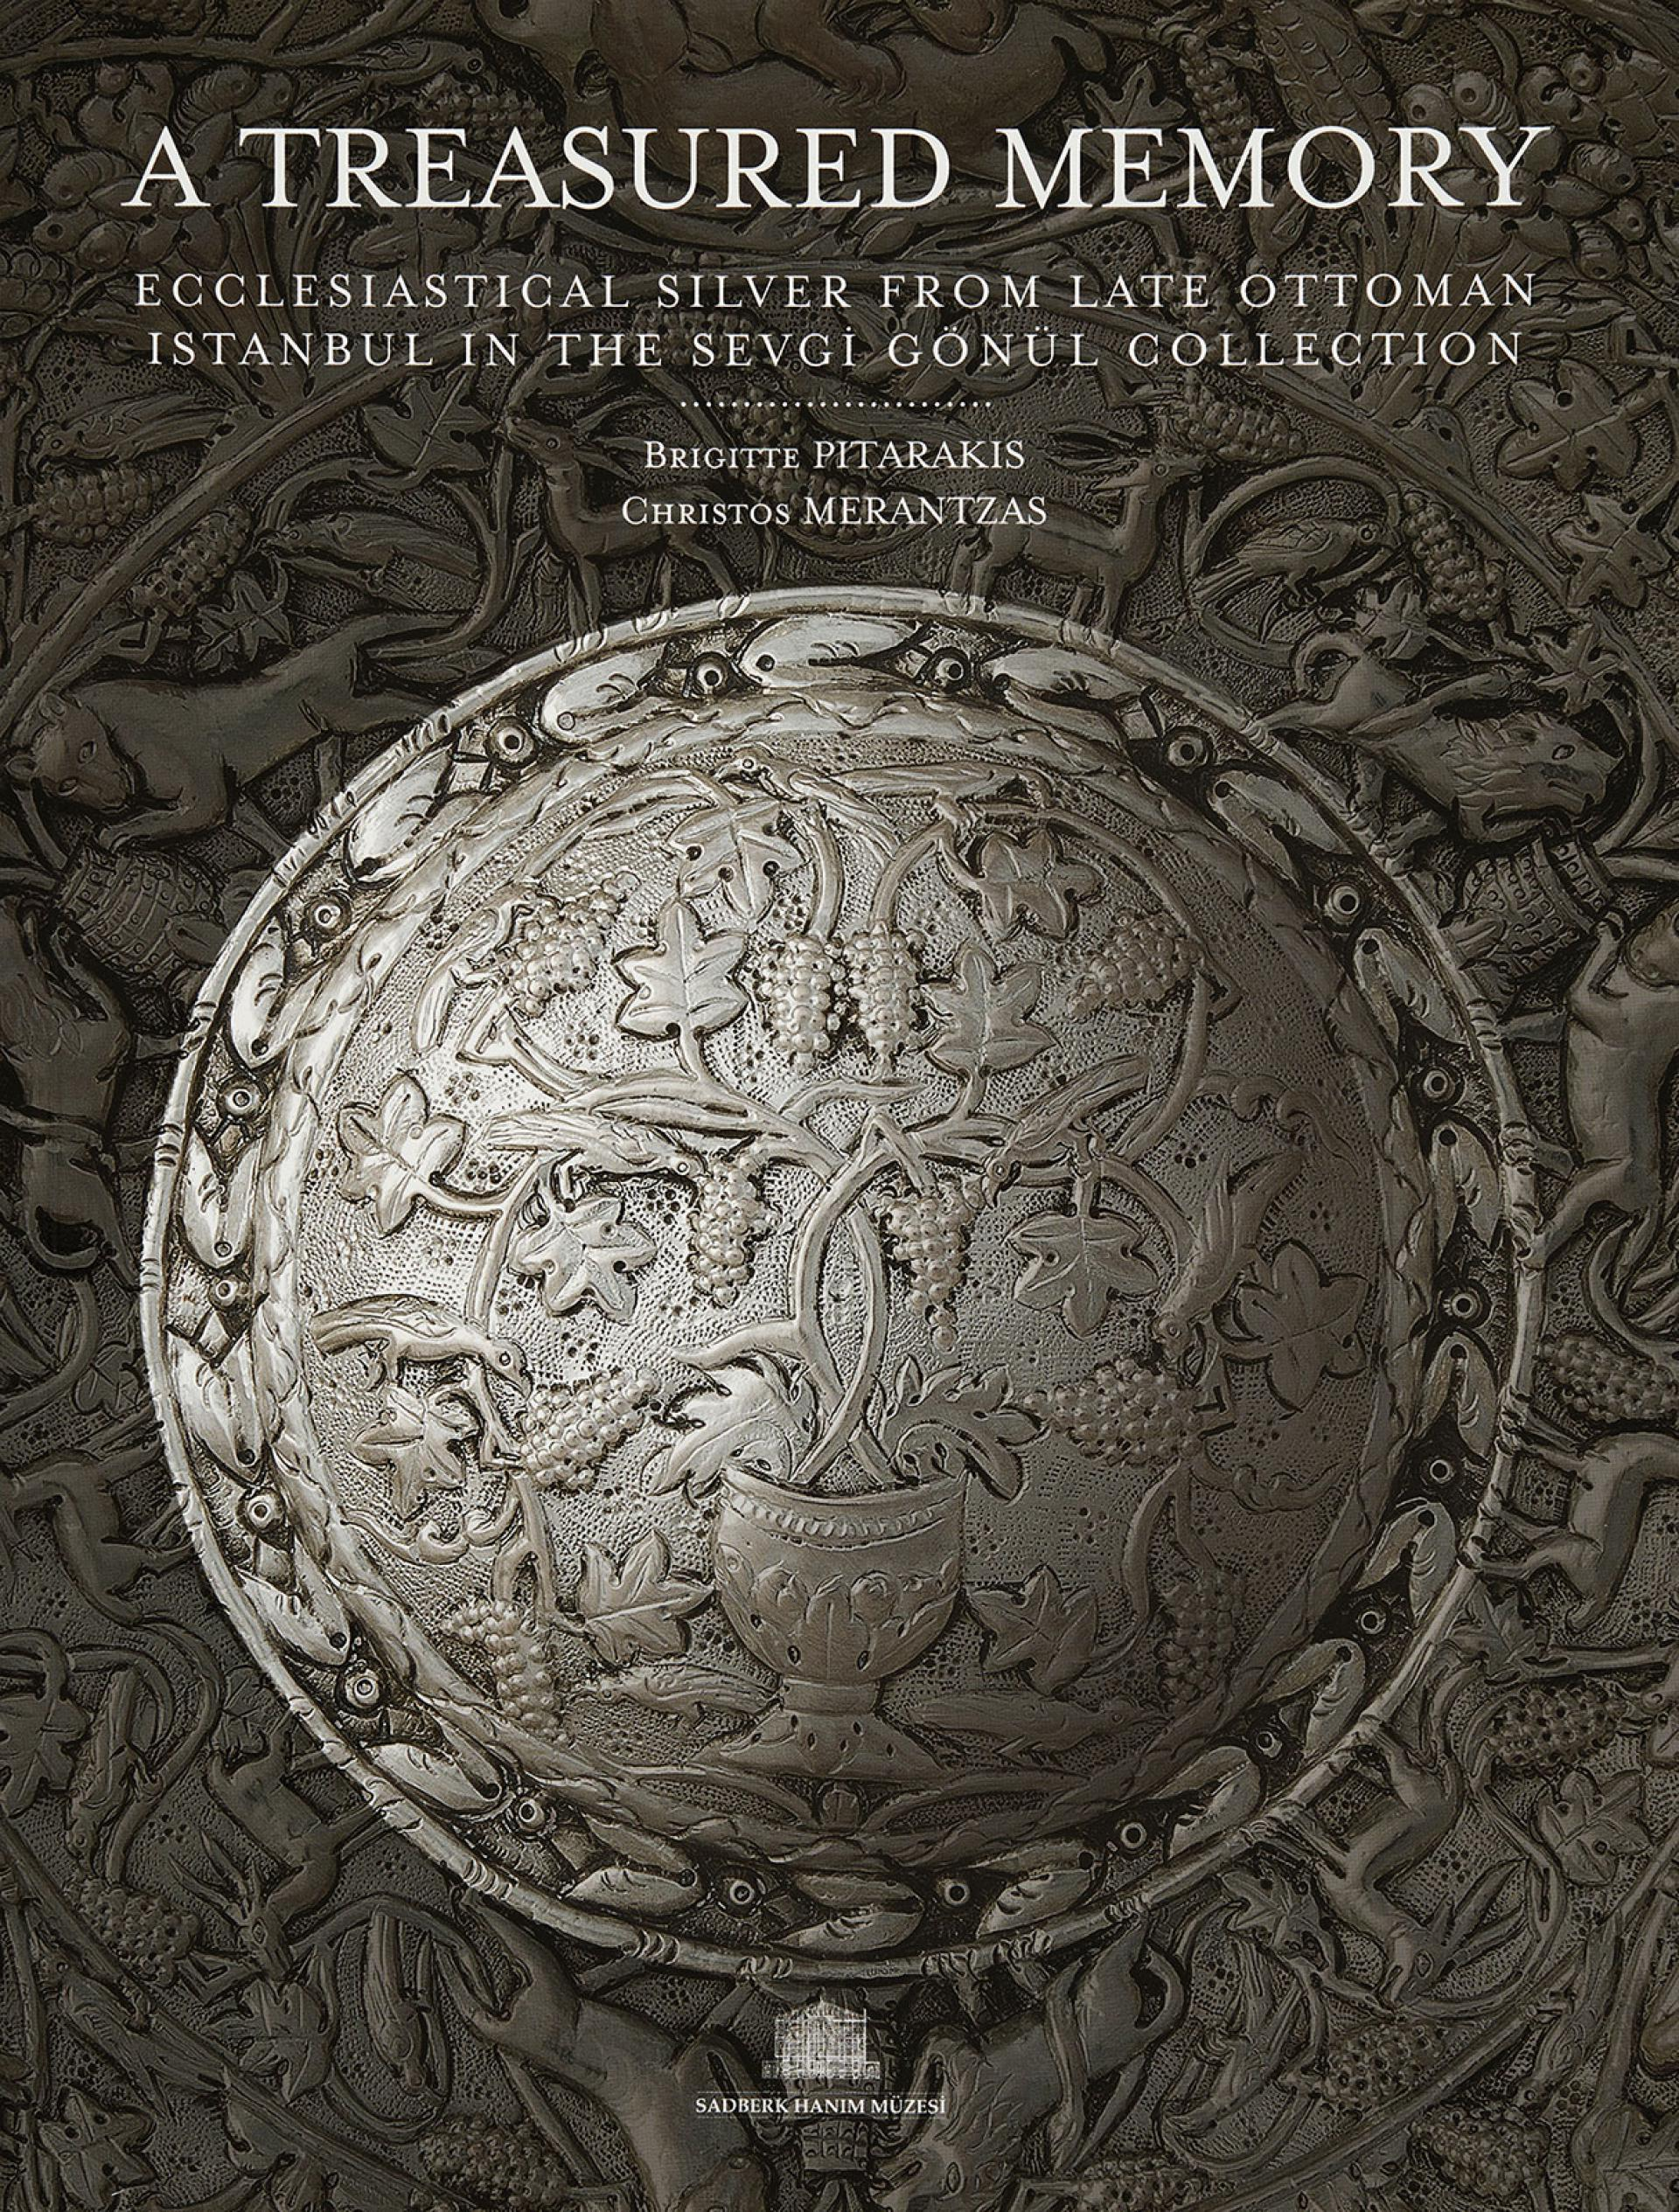 A Treasured Memory Ecclesiastical Silver From Late Ottoman Istanbul in the Sevgi Gönül Collection - EXHIBITIONS - Sadberk Hanım Museum